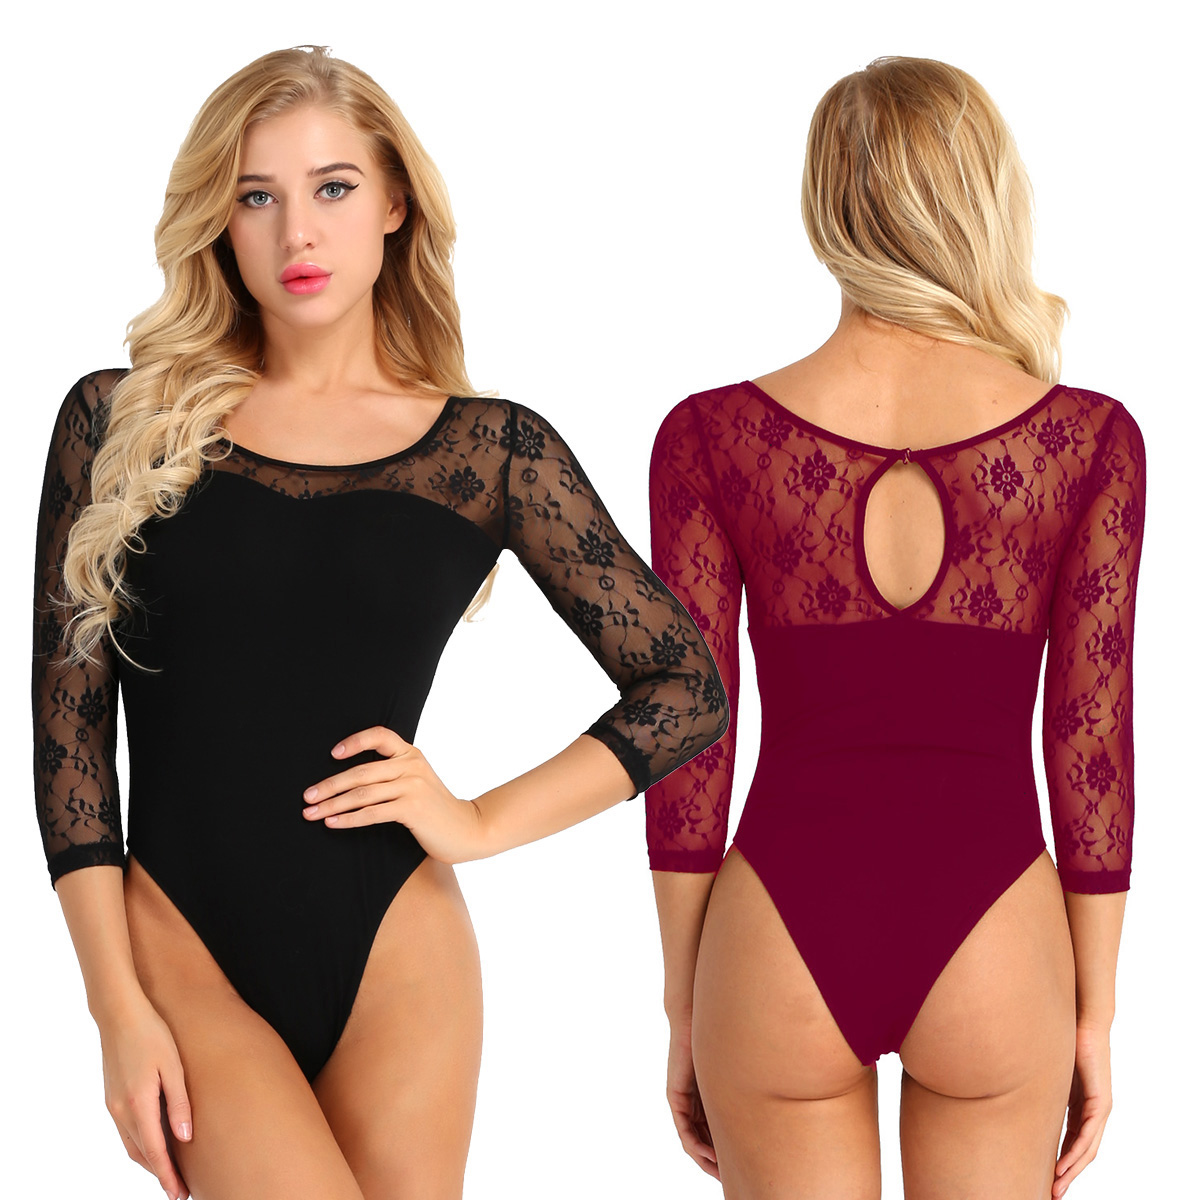 Luggage & Bags Careful Women Adult One-piece Swimsuits Sleeveless Round Neck Front Zipper Racerback Stretch Solid Leotard Bodysuit Beach Bathing Suits Easy To Use